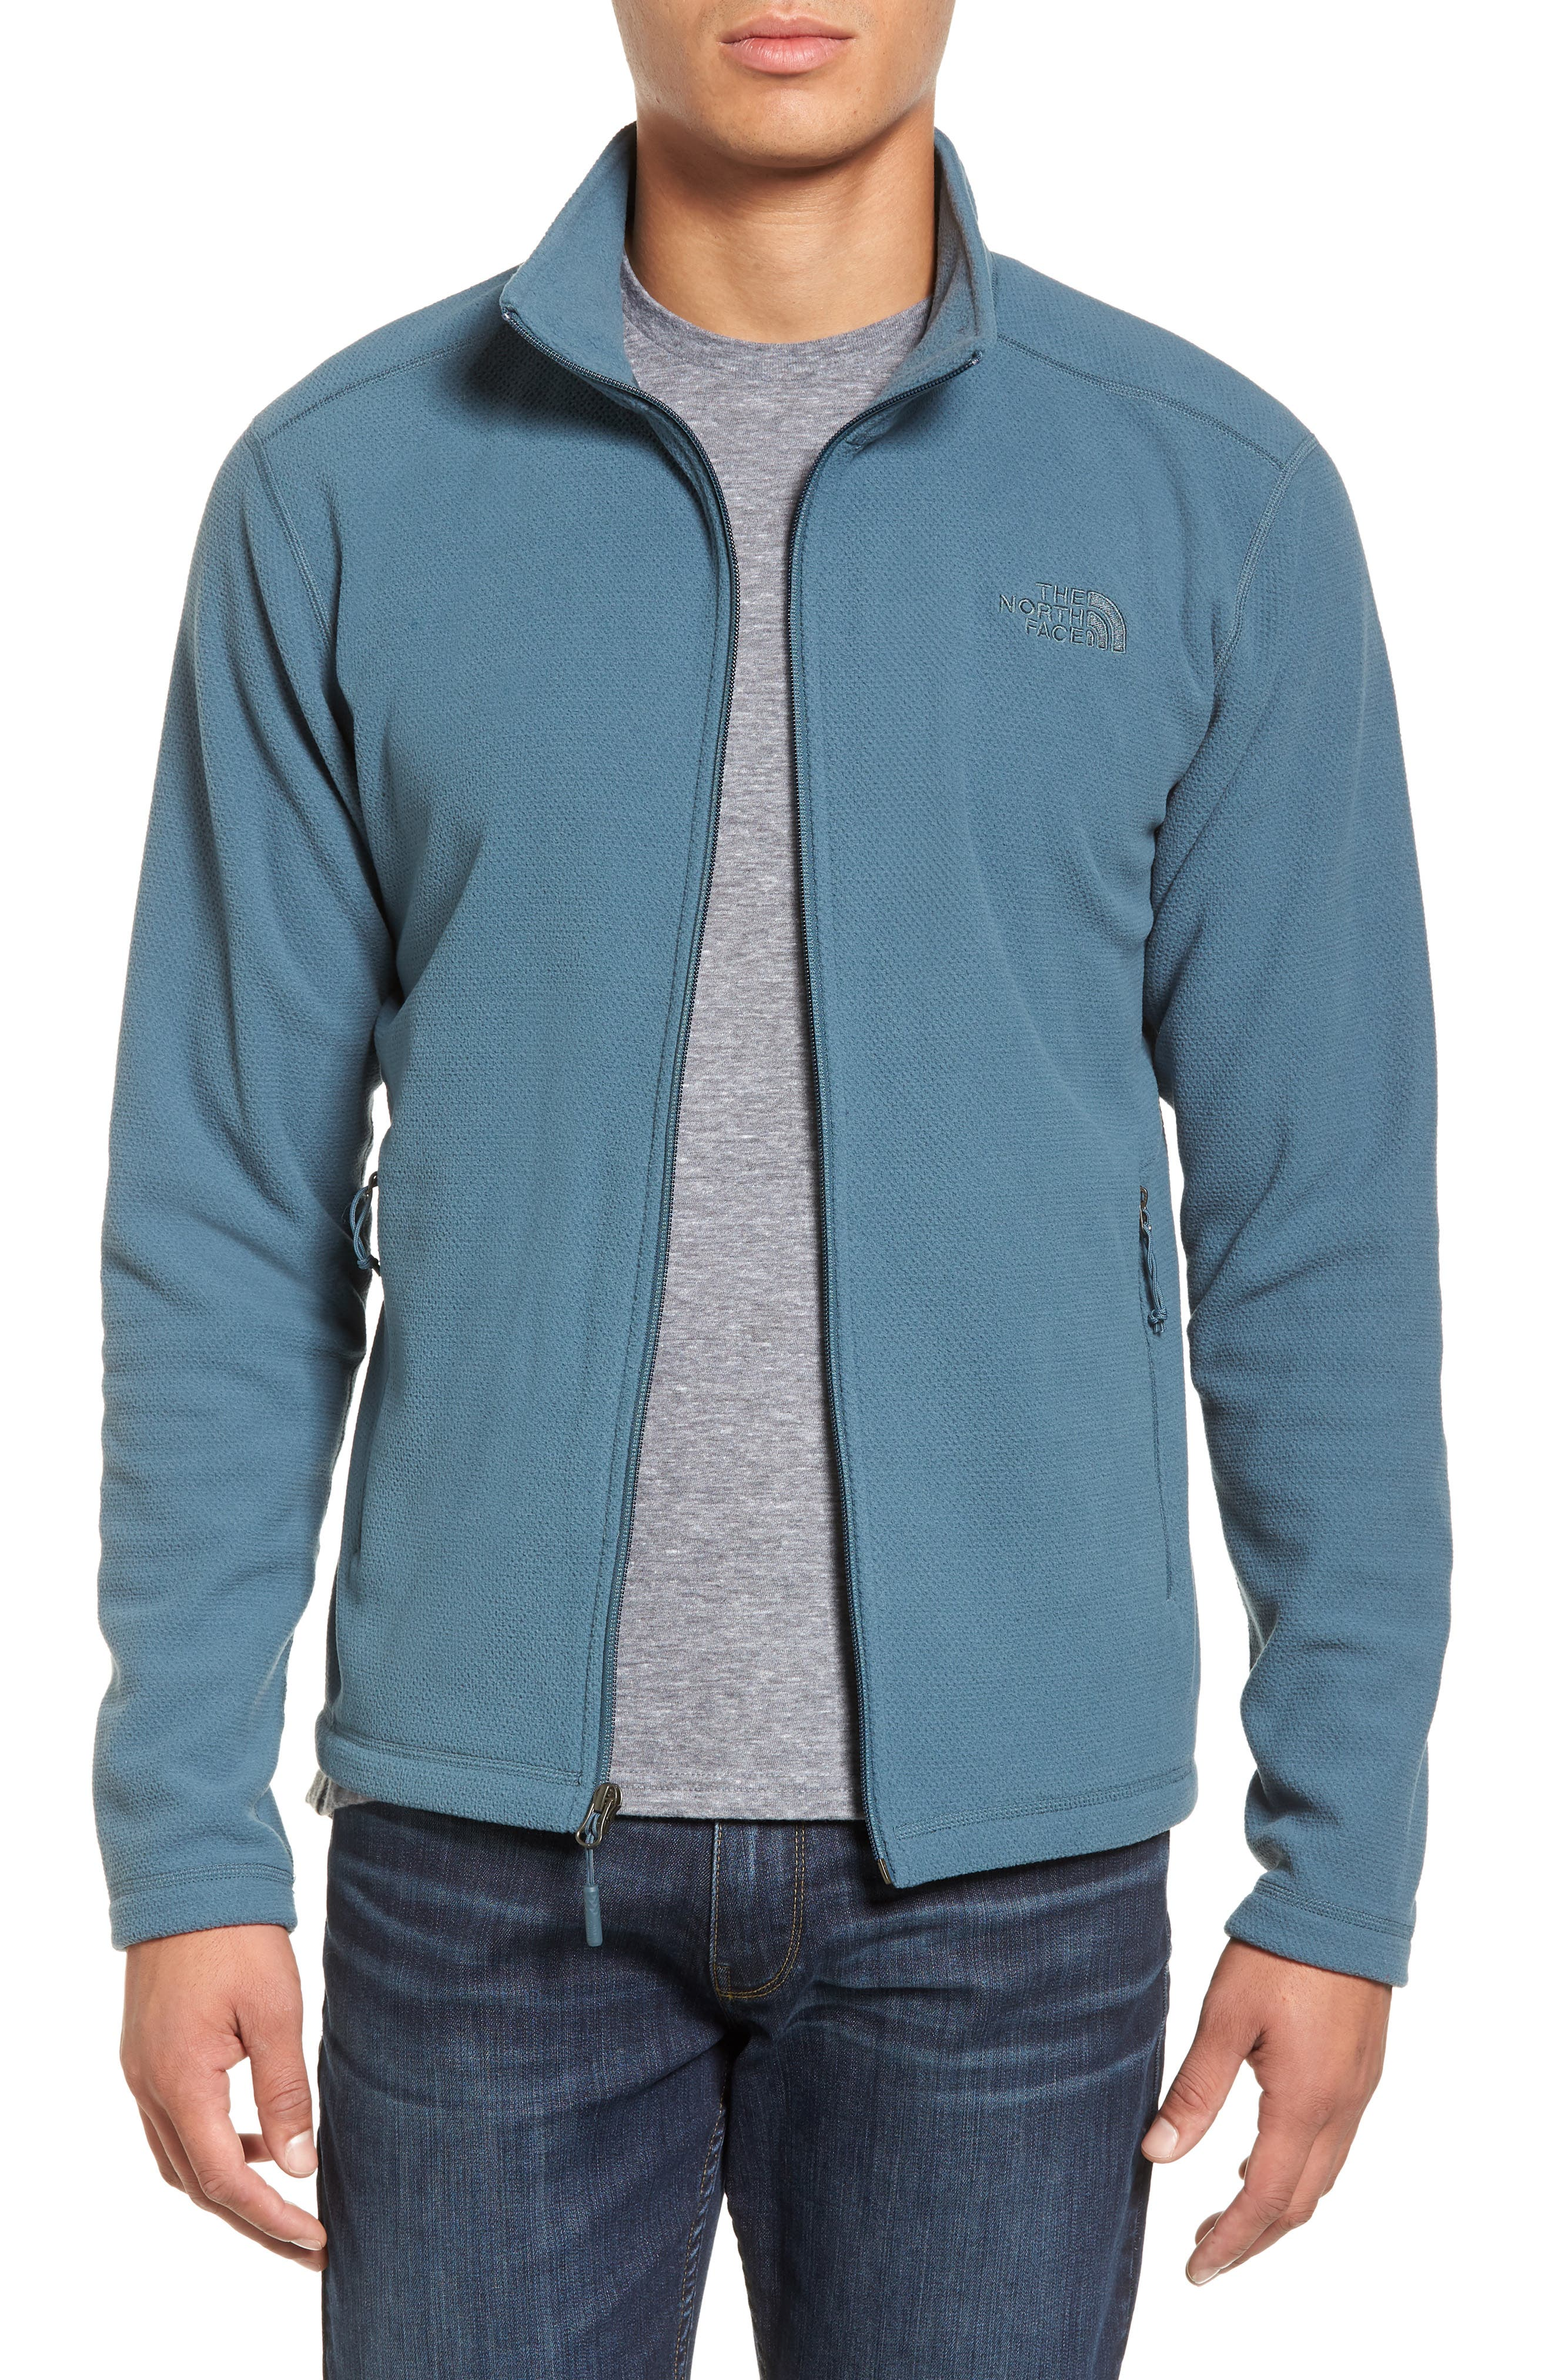 Cap Rock Fleece Jacket,                             Main thumbnail 1, color,                             Conquer Blue